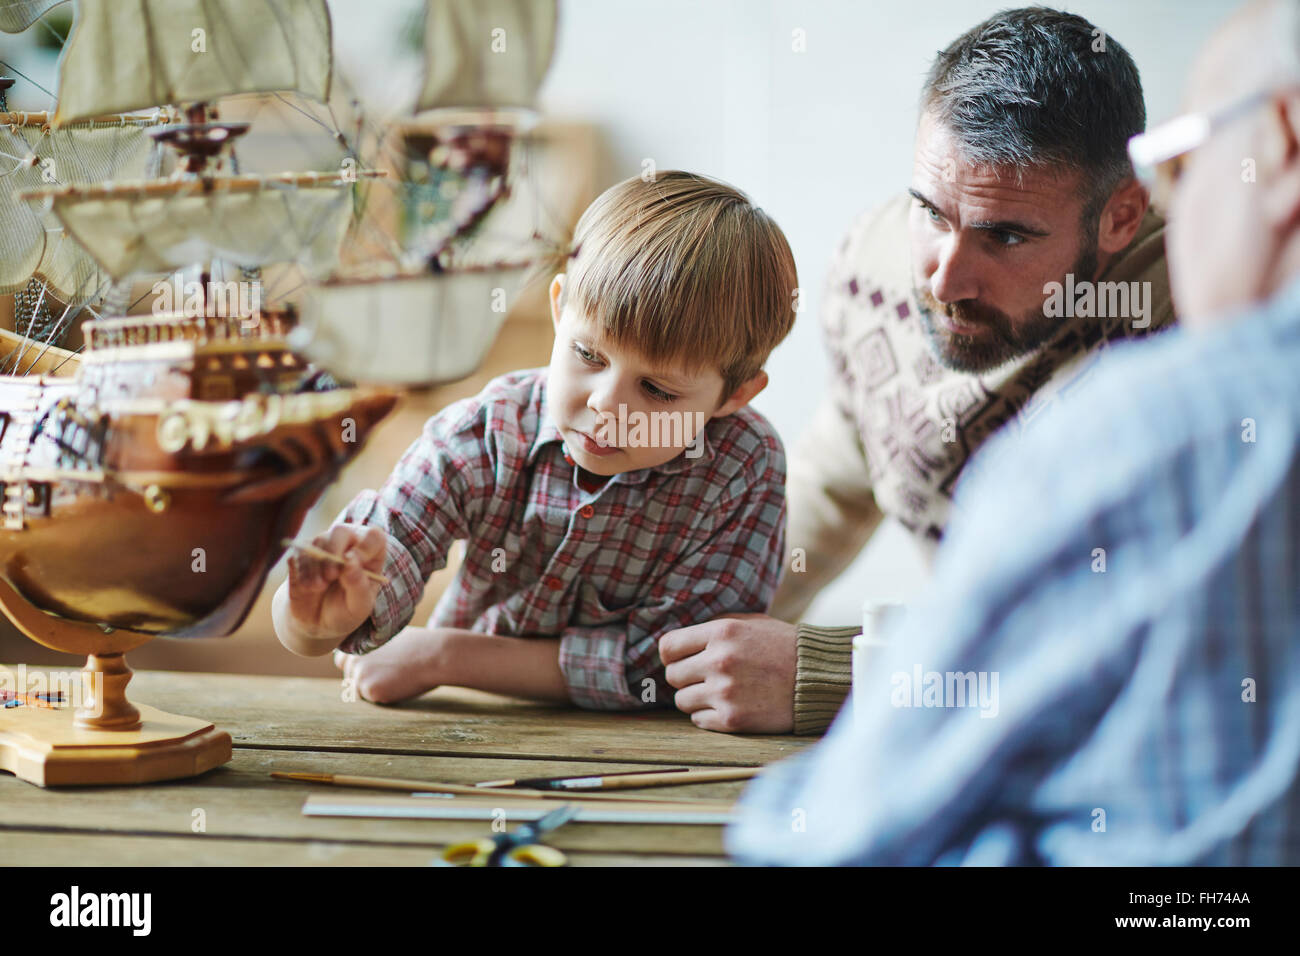 Adorable youngster painting toy ship with his father and grandfather near by - Stock Image